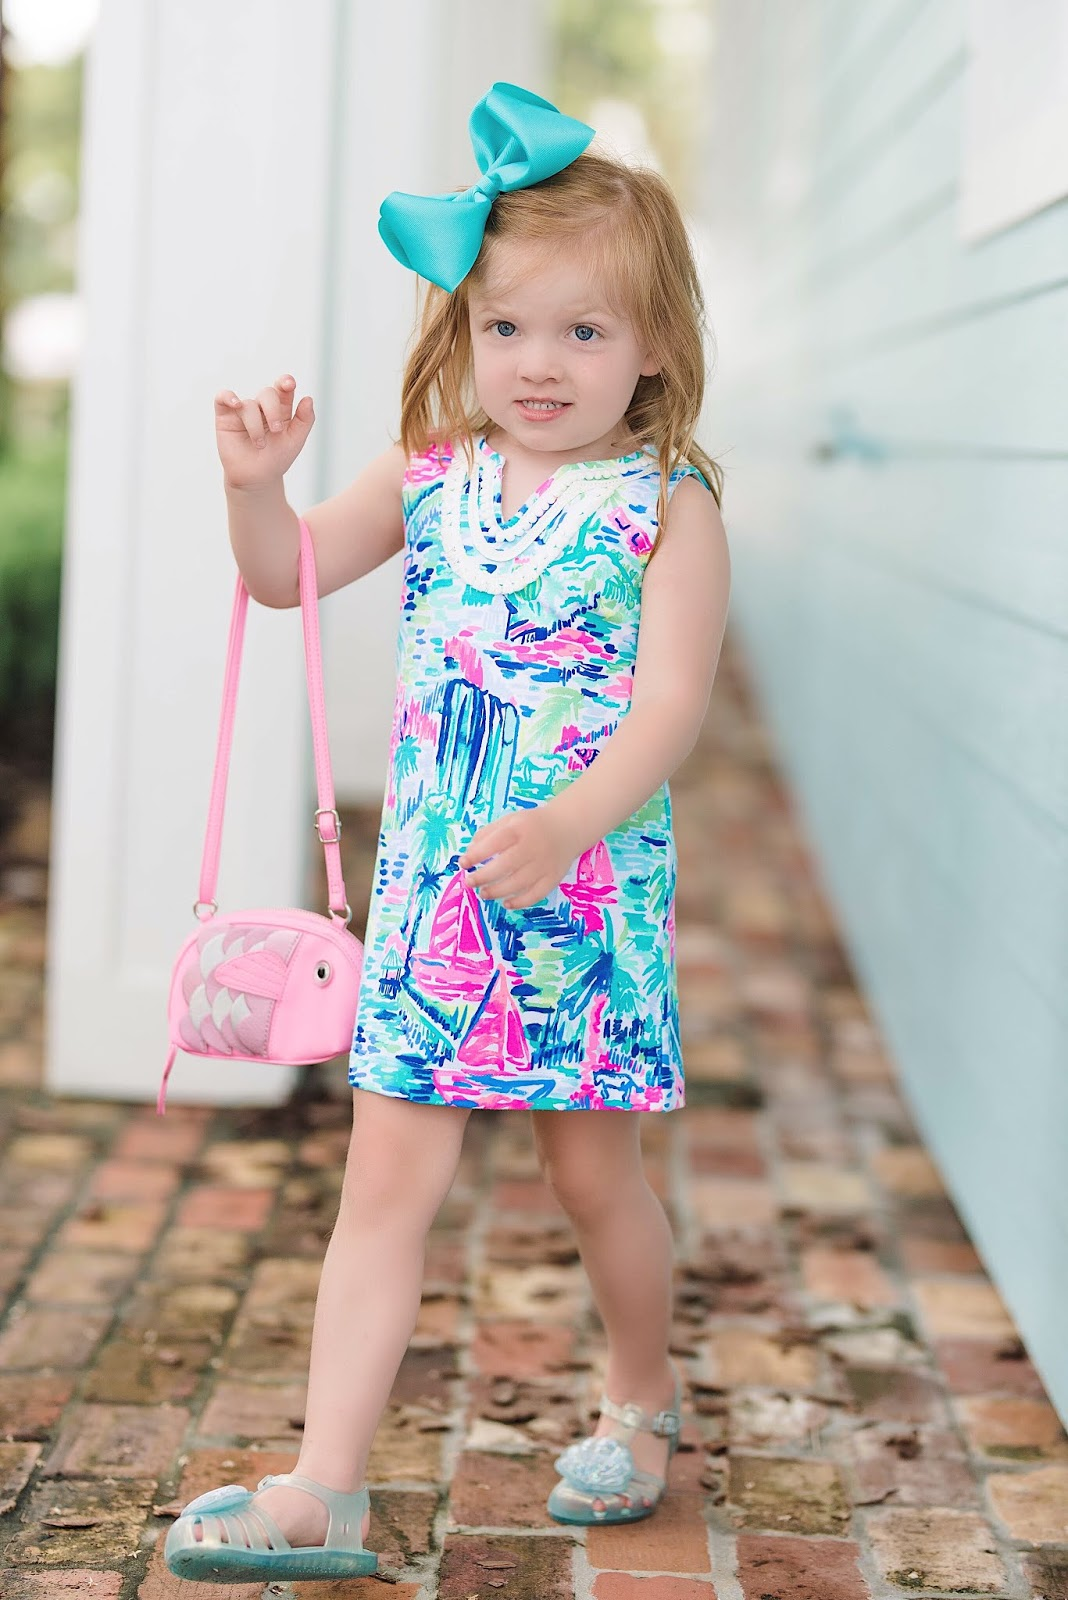 Mommy and Me in Lilly Pulitzer - Multi Salt in the Air - Something Delightful Blog